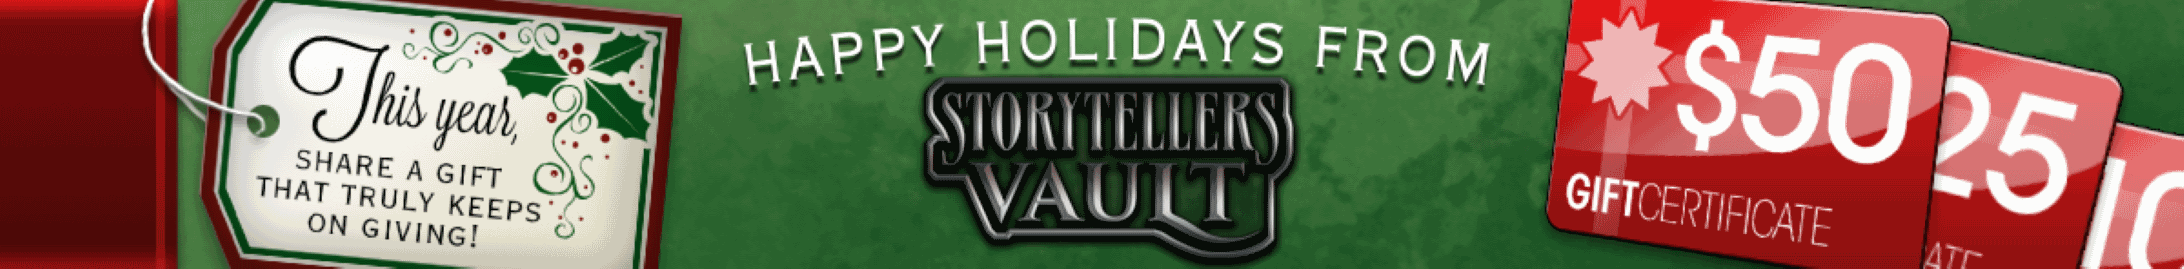 Happy holidays! Gift certificates are available @ Storytellers Vault